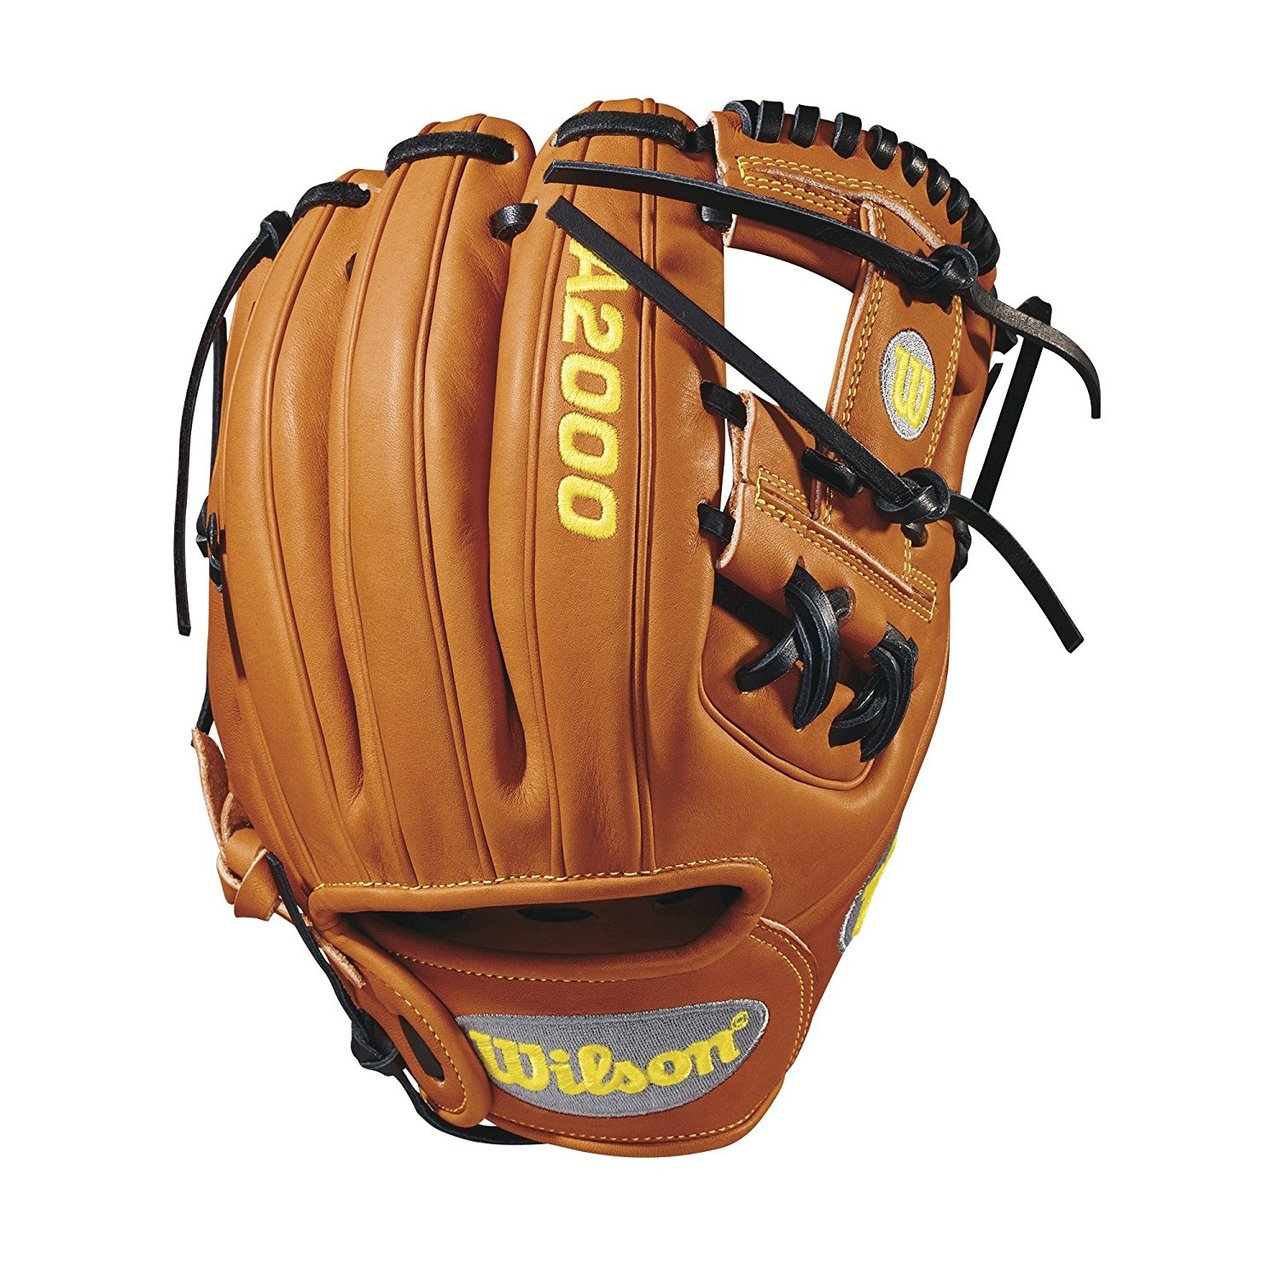 wilson-2018-a2000-dp15-infield-baseball-glove-right-hand-throw-11-5 WTA20RB18DP15-RightHandThrow Wilson 887768614720 Wilsons innovative Pedroia Fit was initially created for the DP15 giving